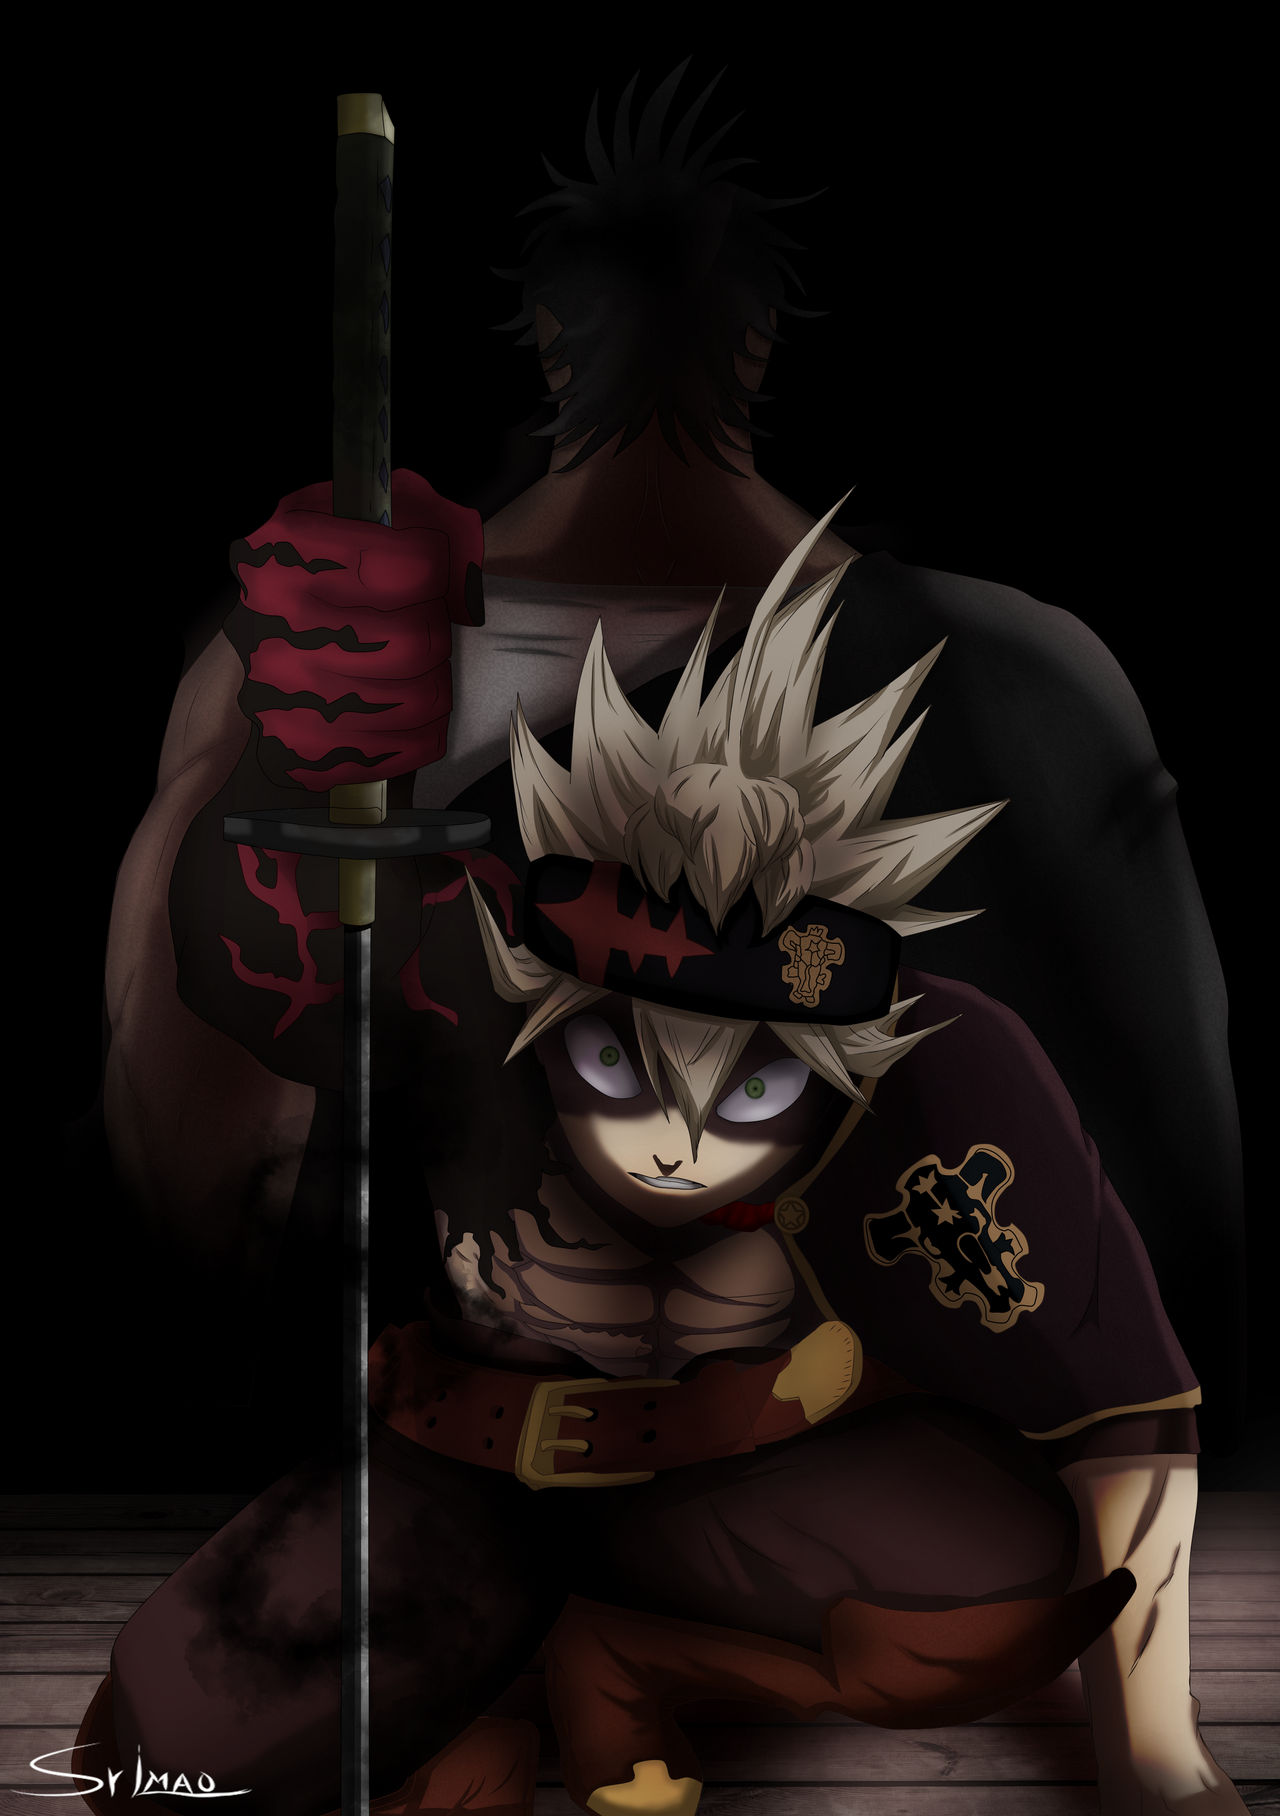 Black Clover Asta And Yami By Srlmao On Deviantart He is extremely skilled in swordsmanship; black clover asta and yami by srlmao